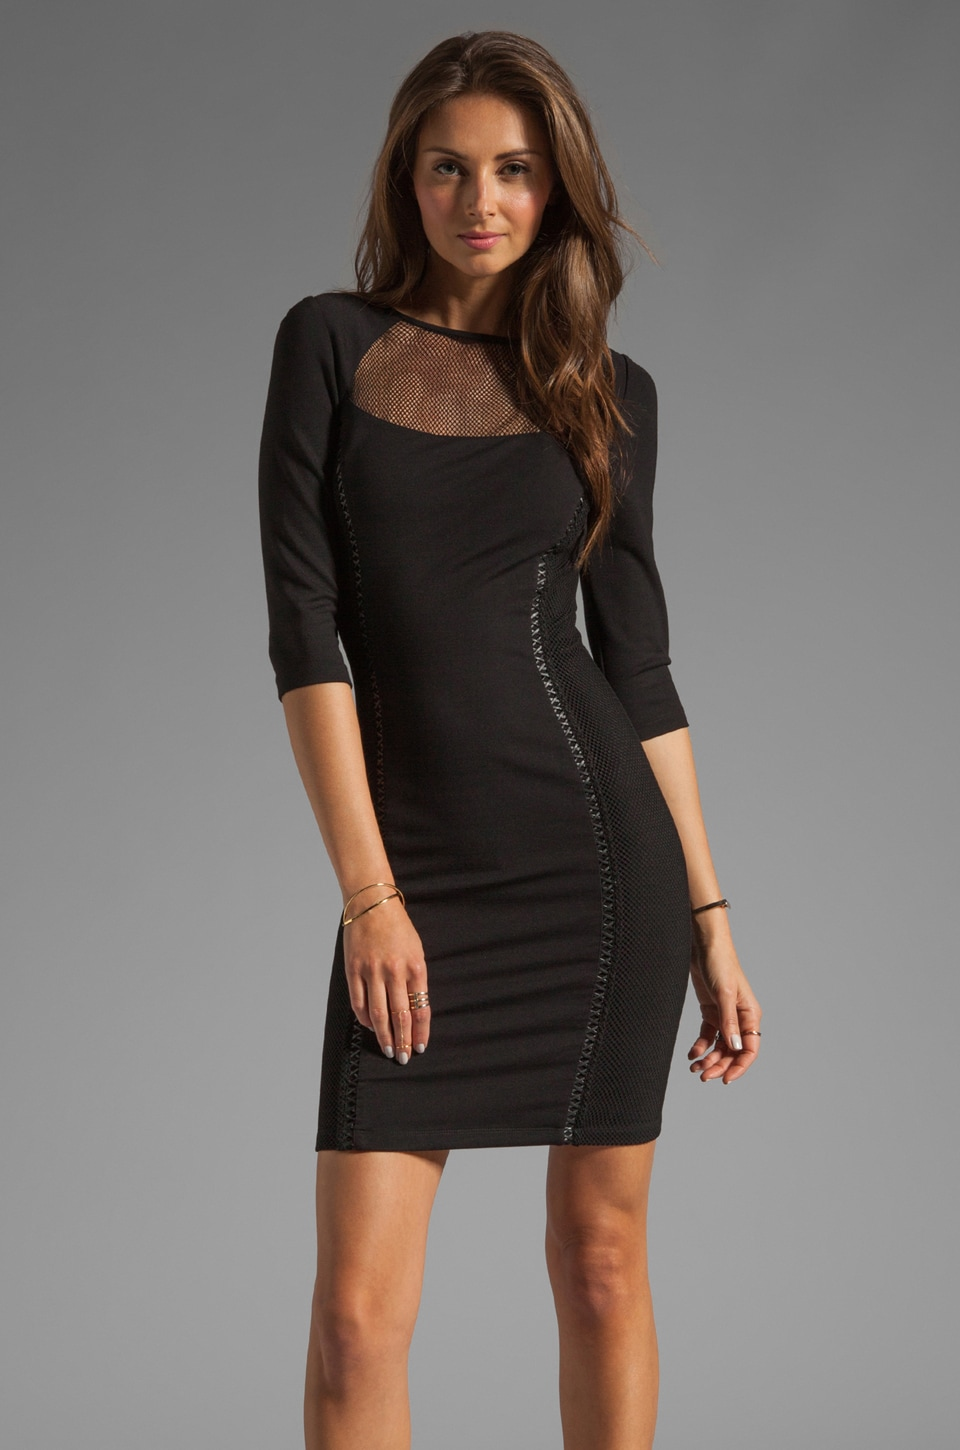 Alice by Temperley Harp Dress in Black